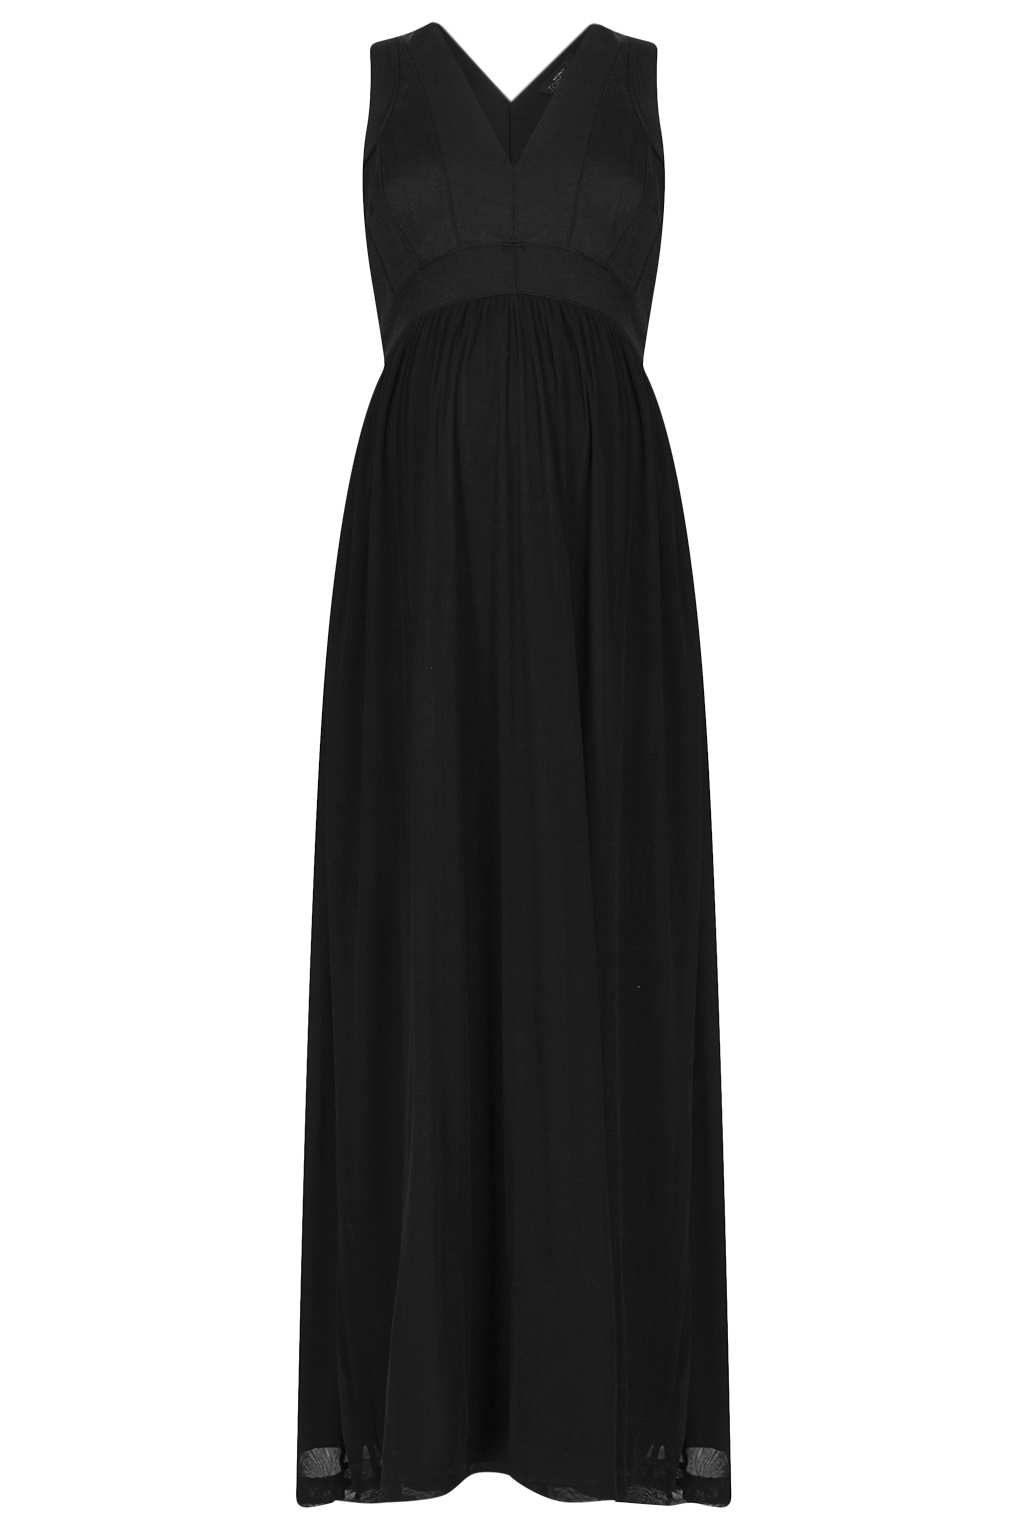 » Review Price Nom Maternity 'Caroline' Maternity/Nursing Maxi Dress by All Maternity Clothing, Online fashion clothing store. We feature the best of women's fashion in dresses, playsuits, skirts, two piece sets and much more!